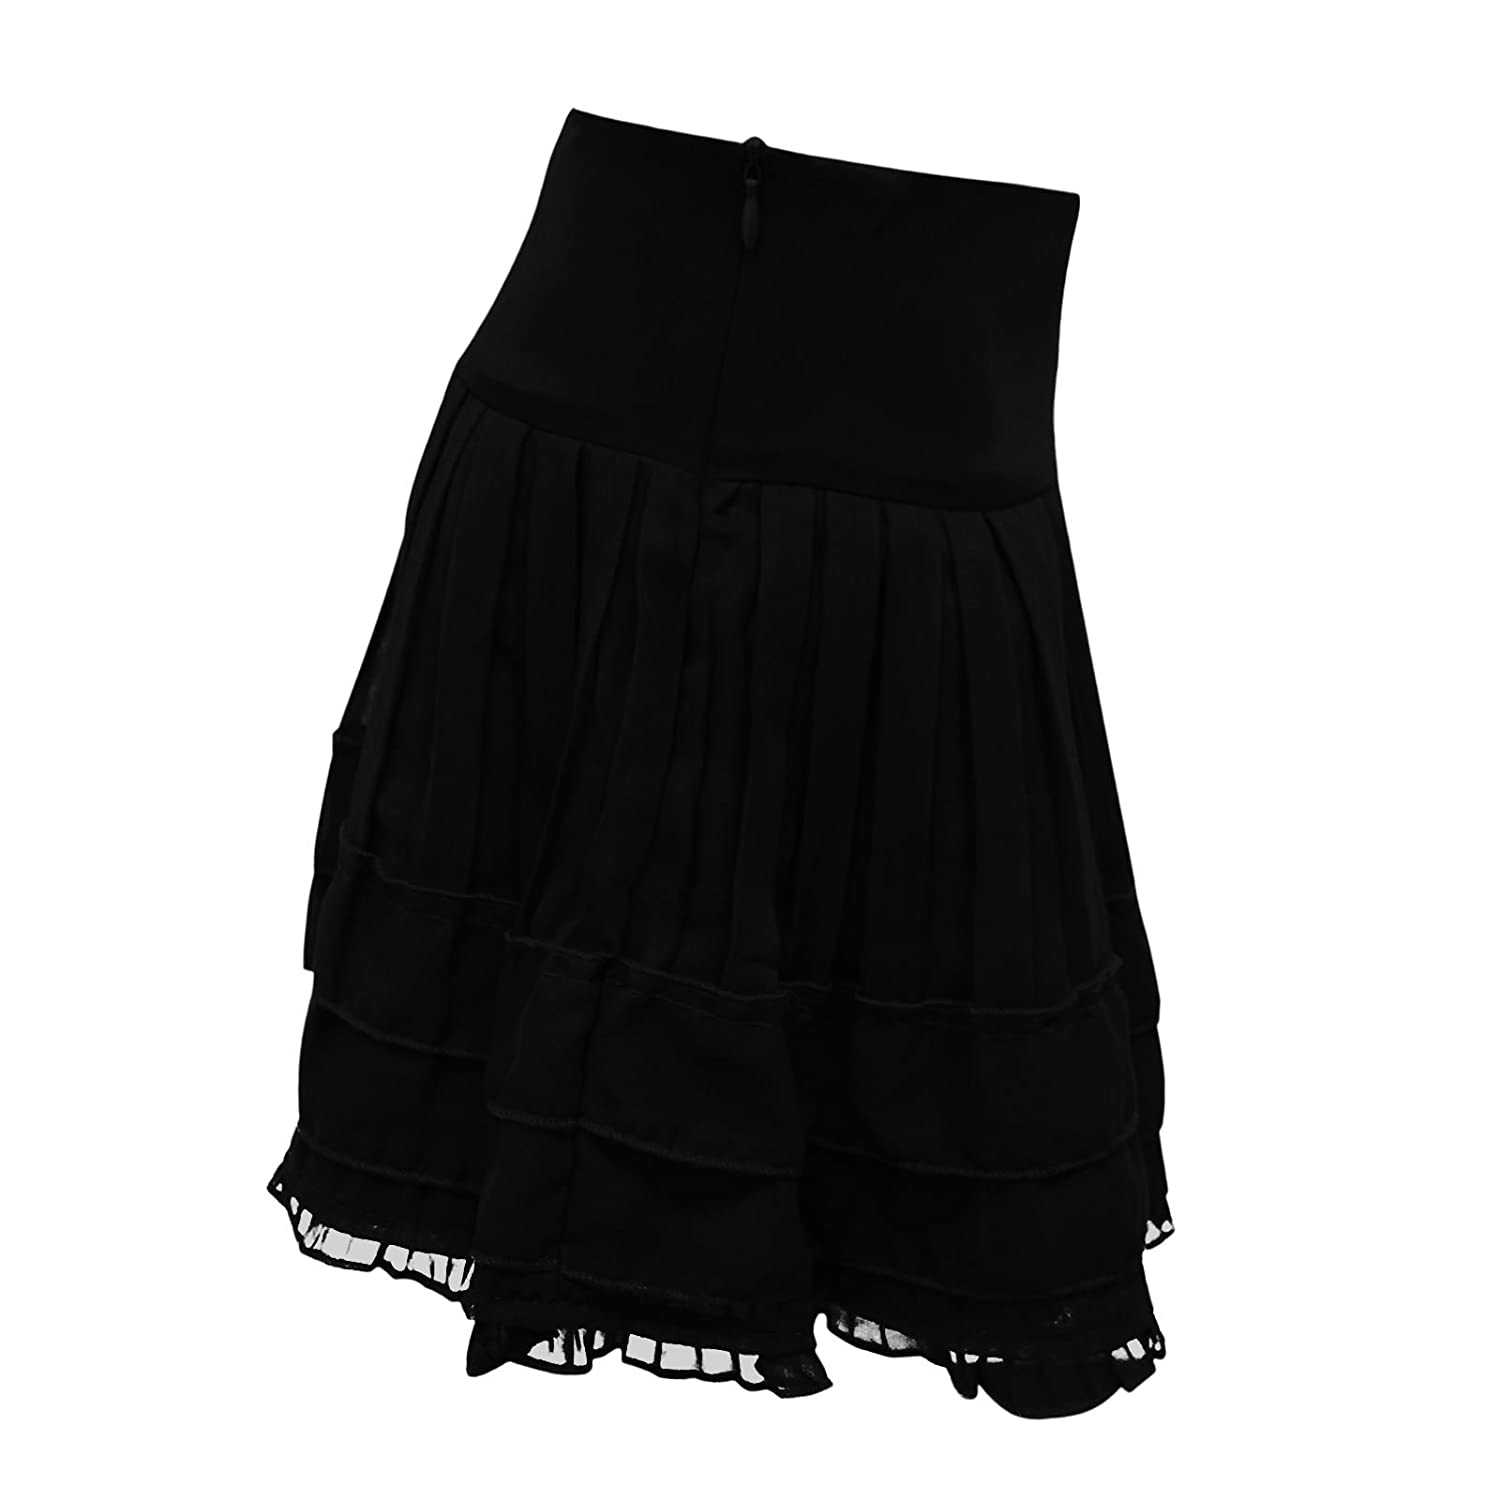 ENVY BOUTIQUE NEW GIRLS KIDS PLAIN PETTICOAT CASUAL SUMMER FRILL SKATER RA  RA LAYERED SKIRT GREEN 13 YEARS: Amazon.co.uk: Clothing